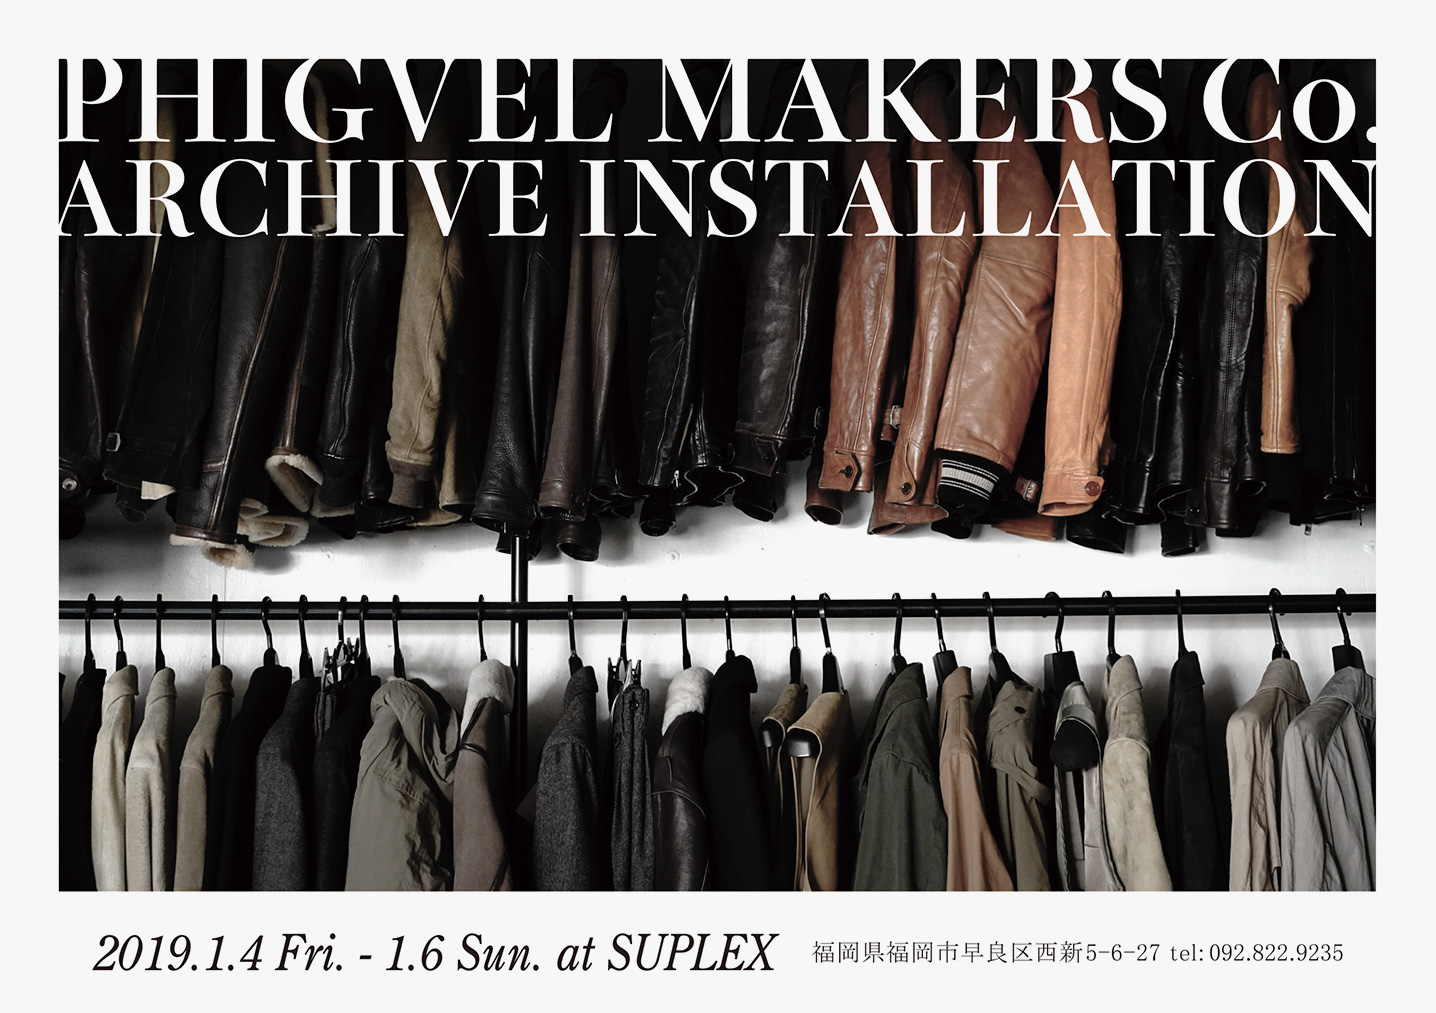 PHIGVEL ARCHIVE INSTALLATION at SUPLEX